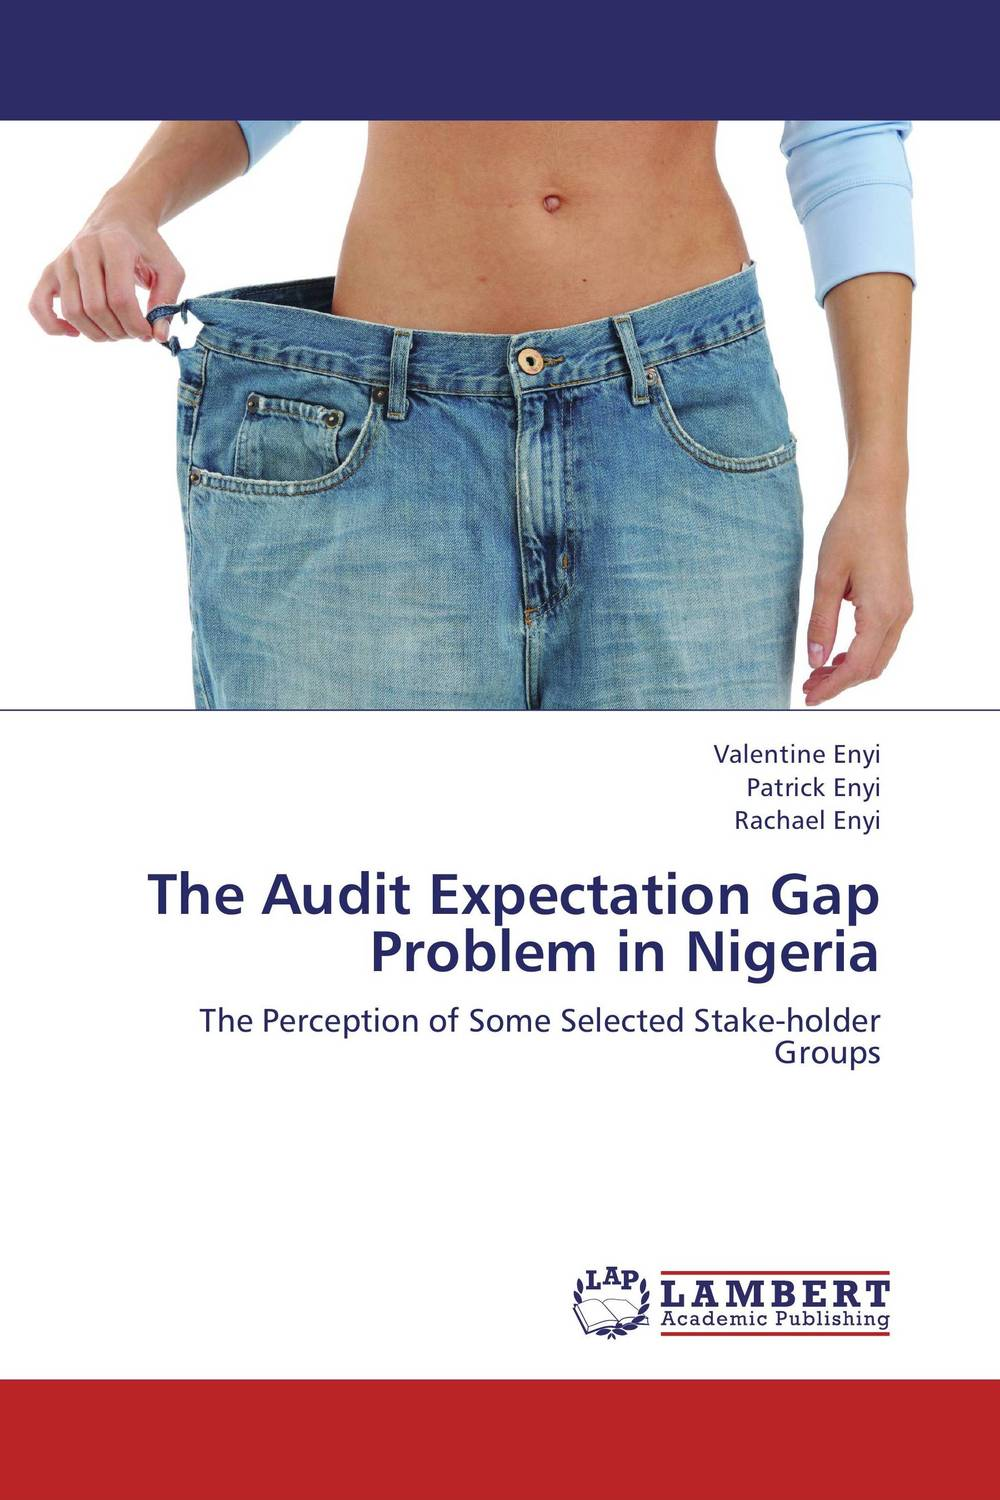 The Audit Expectation Gap Problem in Nigeria